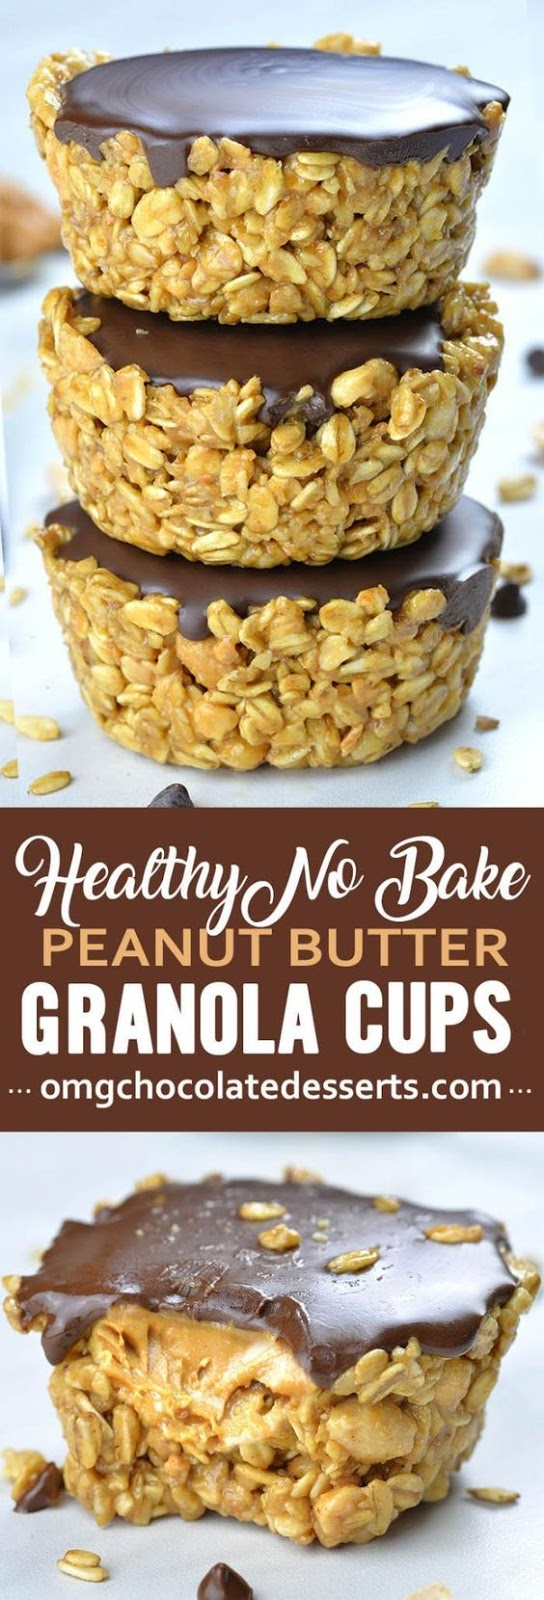 No Bake Peanut Butter Granola Cups #recipes #healthyrecipes #easyhealthyrecipes #food #foodporn #healthy #yummy #instafood #foodie #delicious #dinner #breakfast #dessert #lunch #vegan #cake #eatclean #homemade #diet #healthyfood #cleaneating #foodstagram